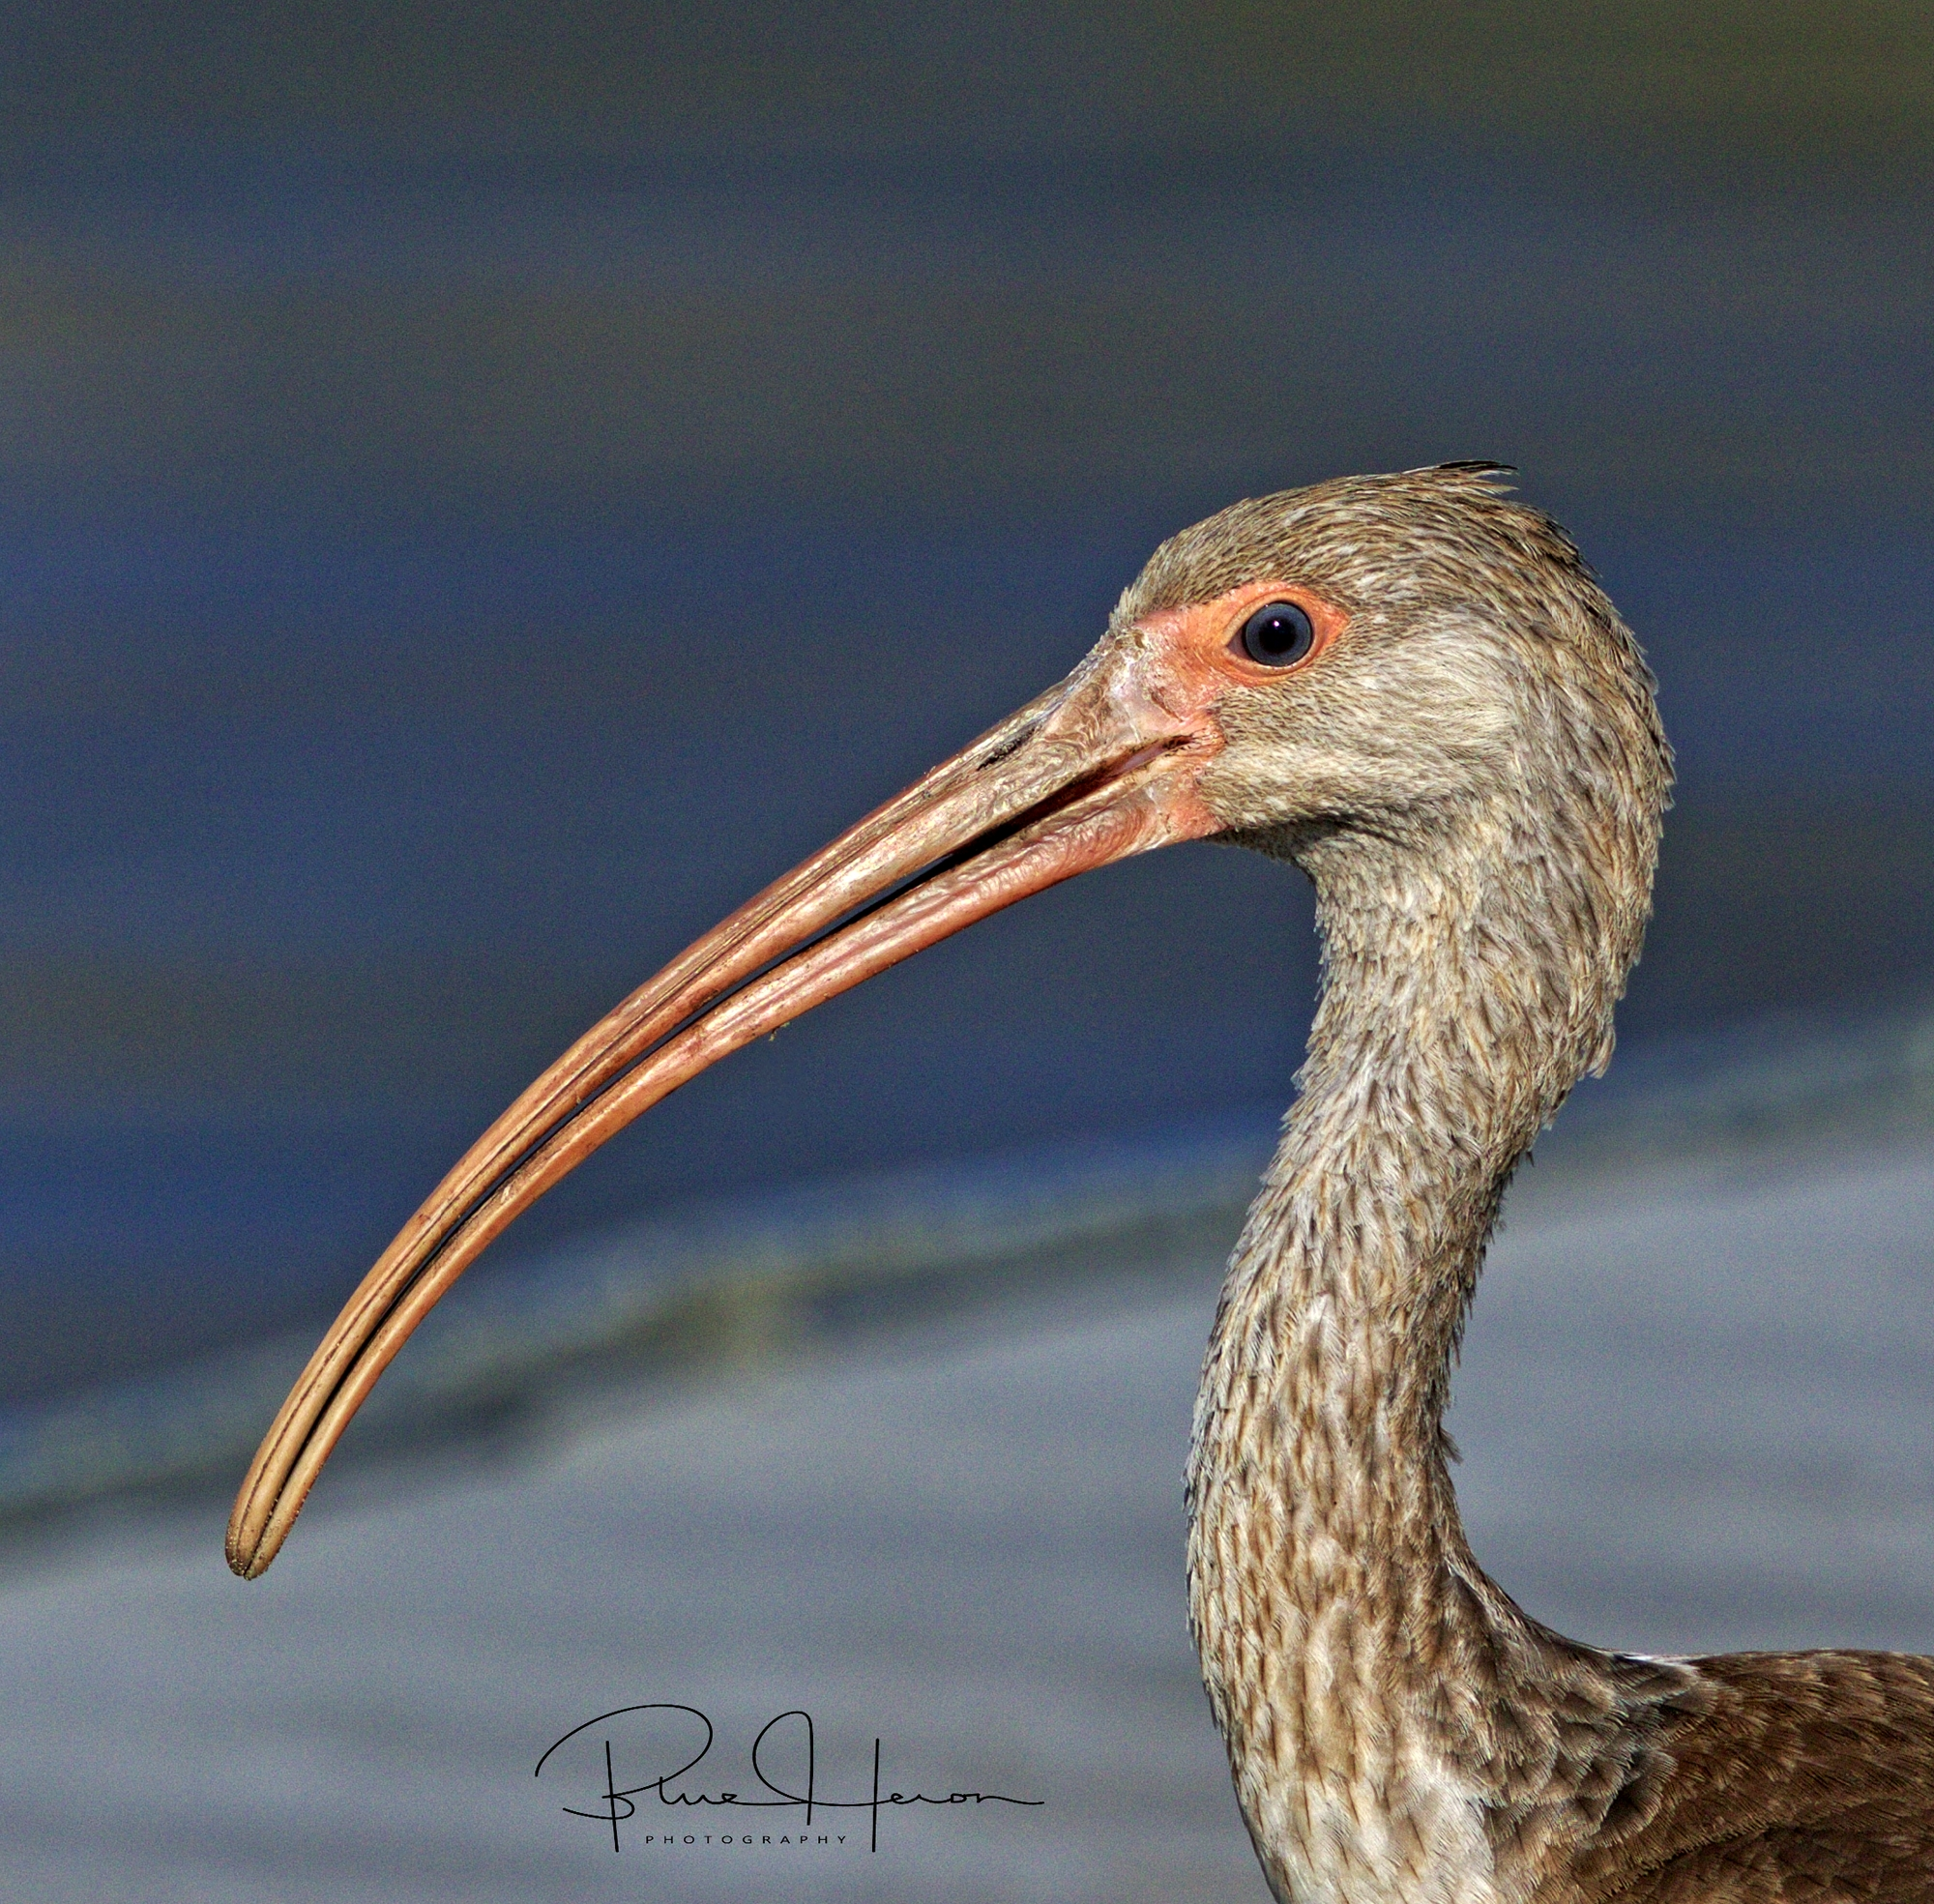 The Juvenile White Ibis landed on the dock very near to me ...